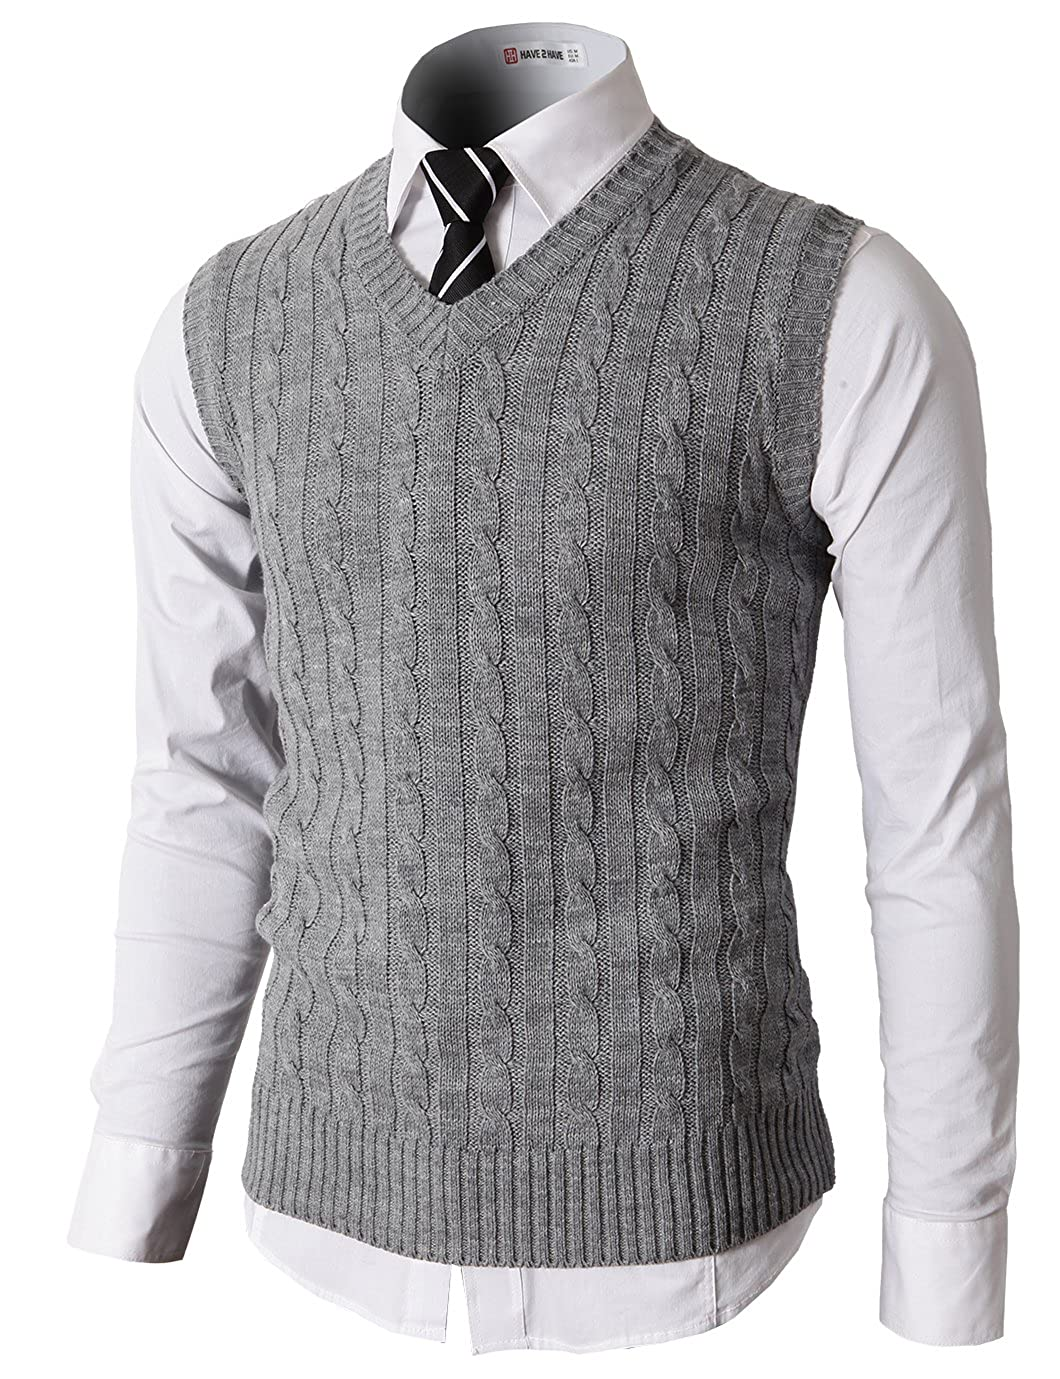 Men's Vintage Sweaters, Retro Jumpers 1920s to 1980s H2H Mens Casual Knitted Slim Fit V-neck Vest With Twisted Patterned $26.80 AT vintagedancer.com